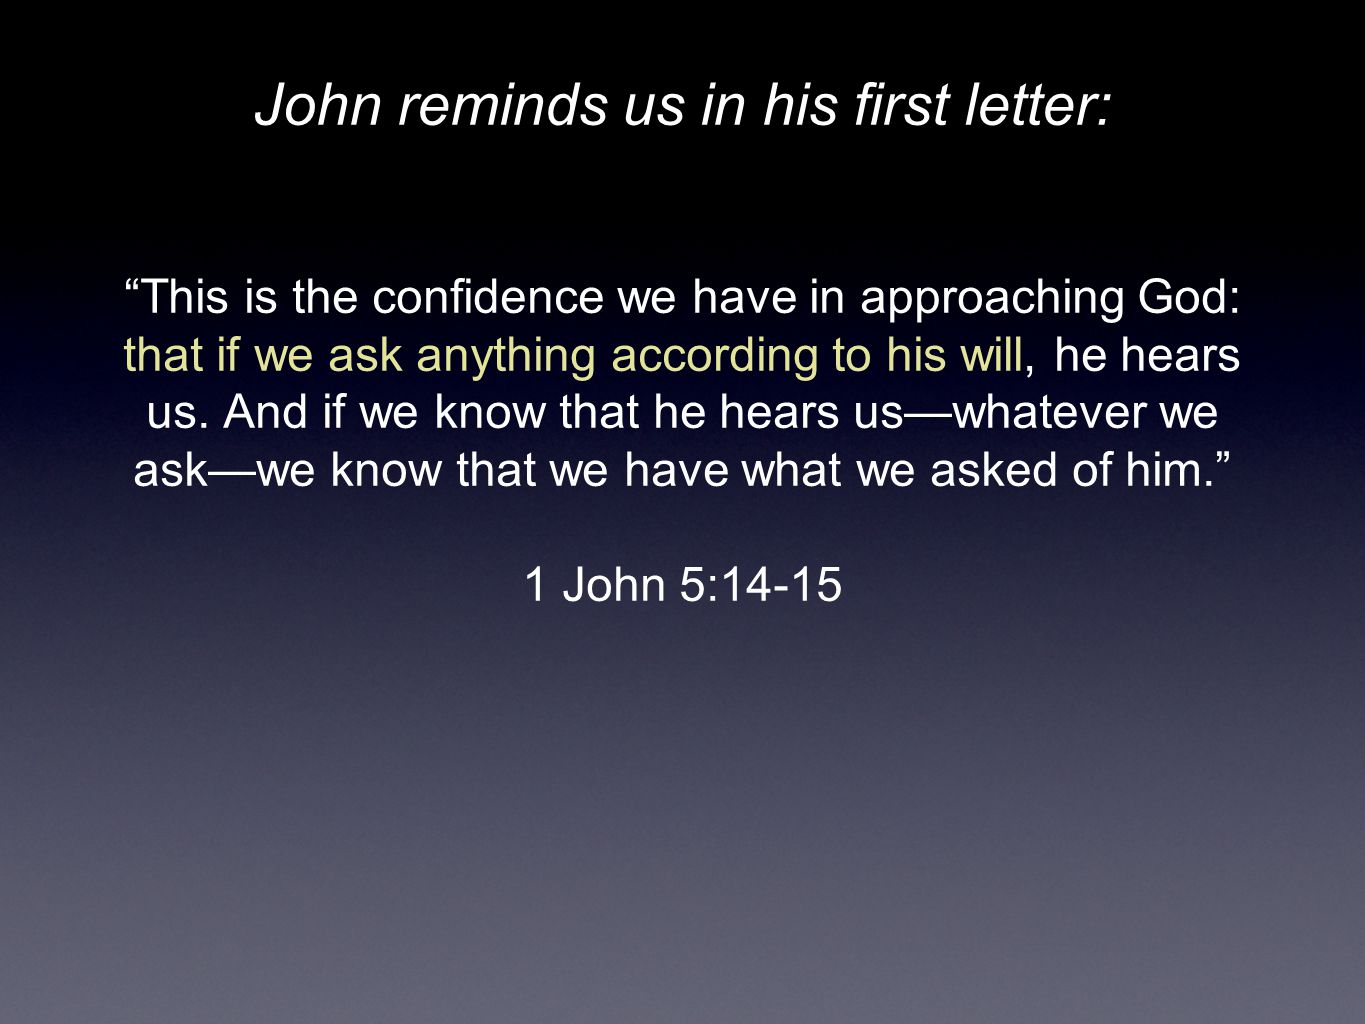 """John reminds us in his first letter: """"This is the confidence we have in approaching God: that if we ask anything according to his will, he hears us. A"""